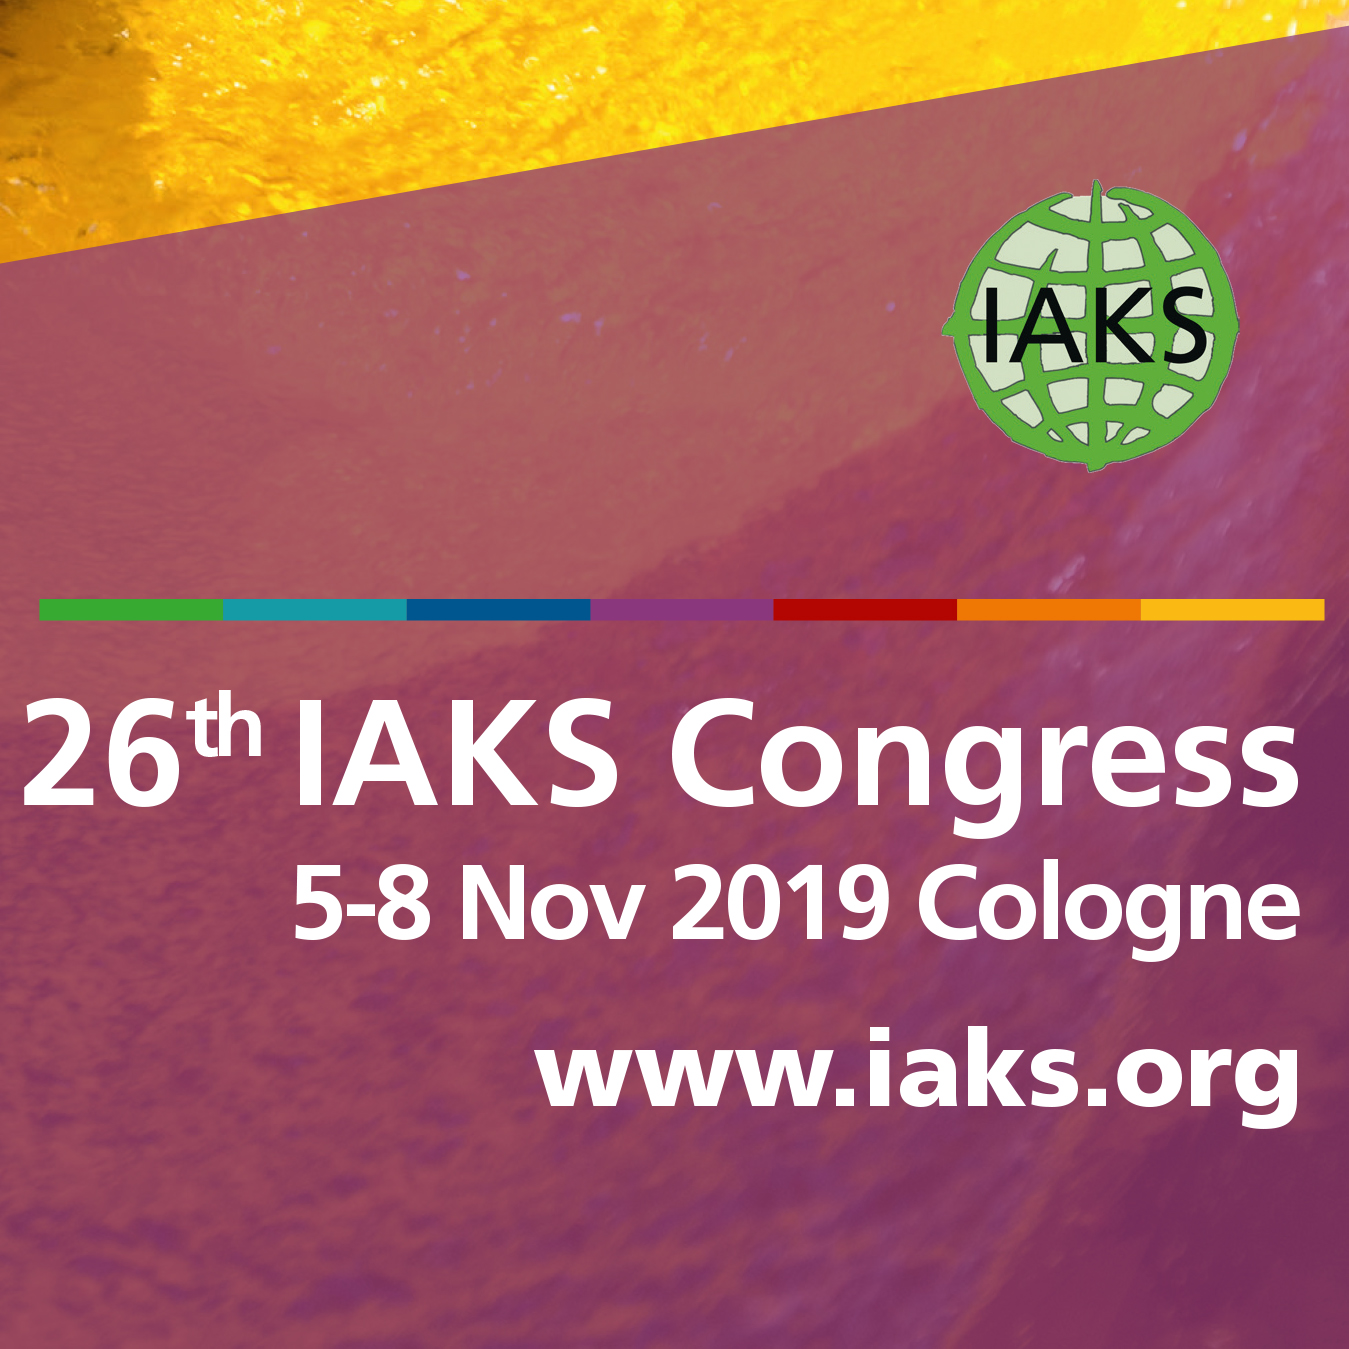 International Association for Sports and Leisure Facilities: Submit your abstract for the 2019 IAKS Congress until 28 February